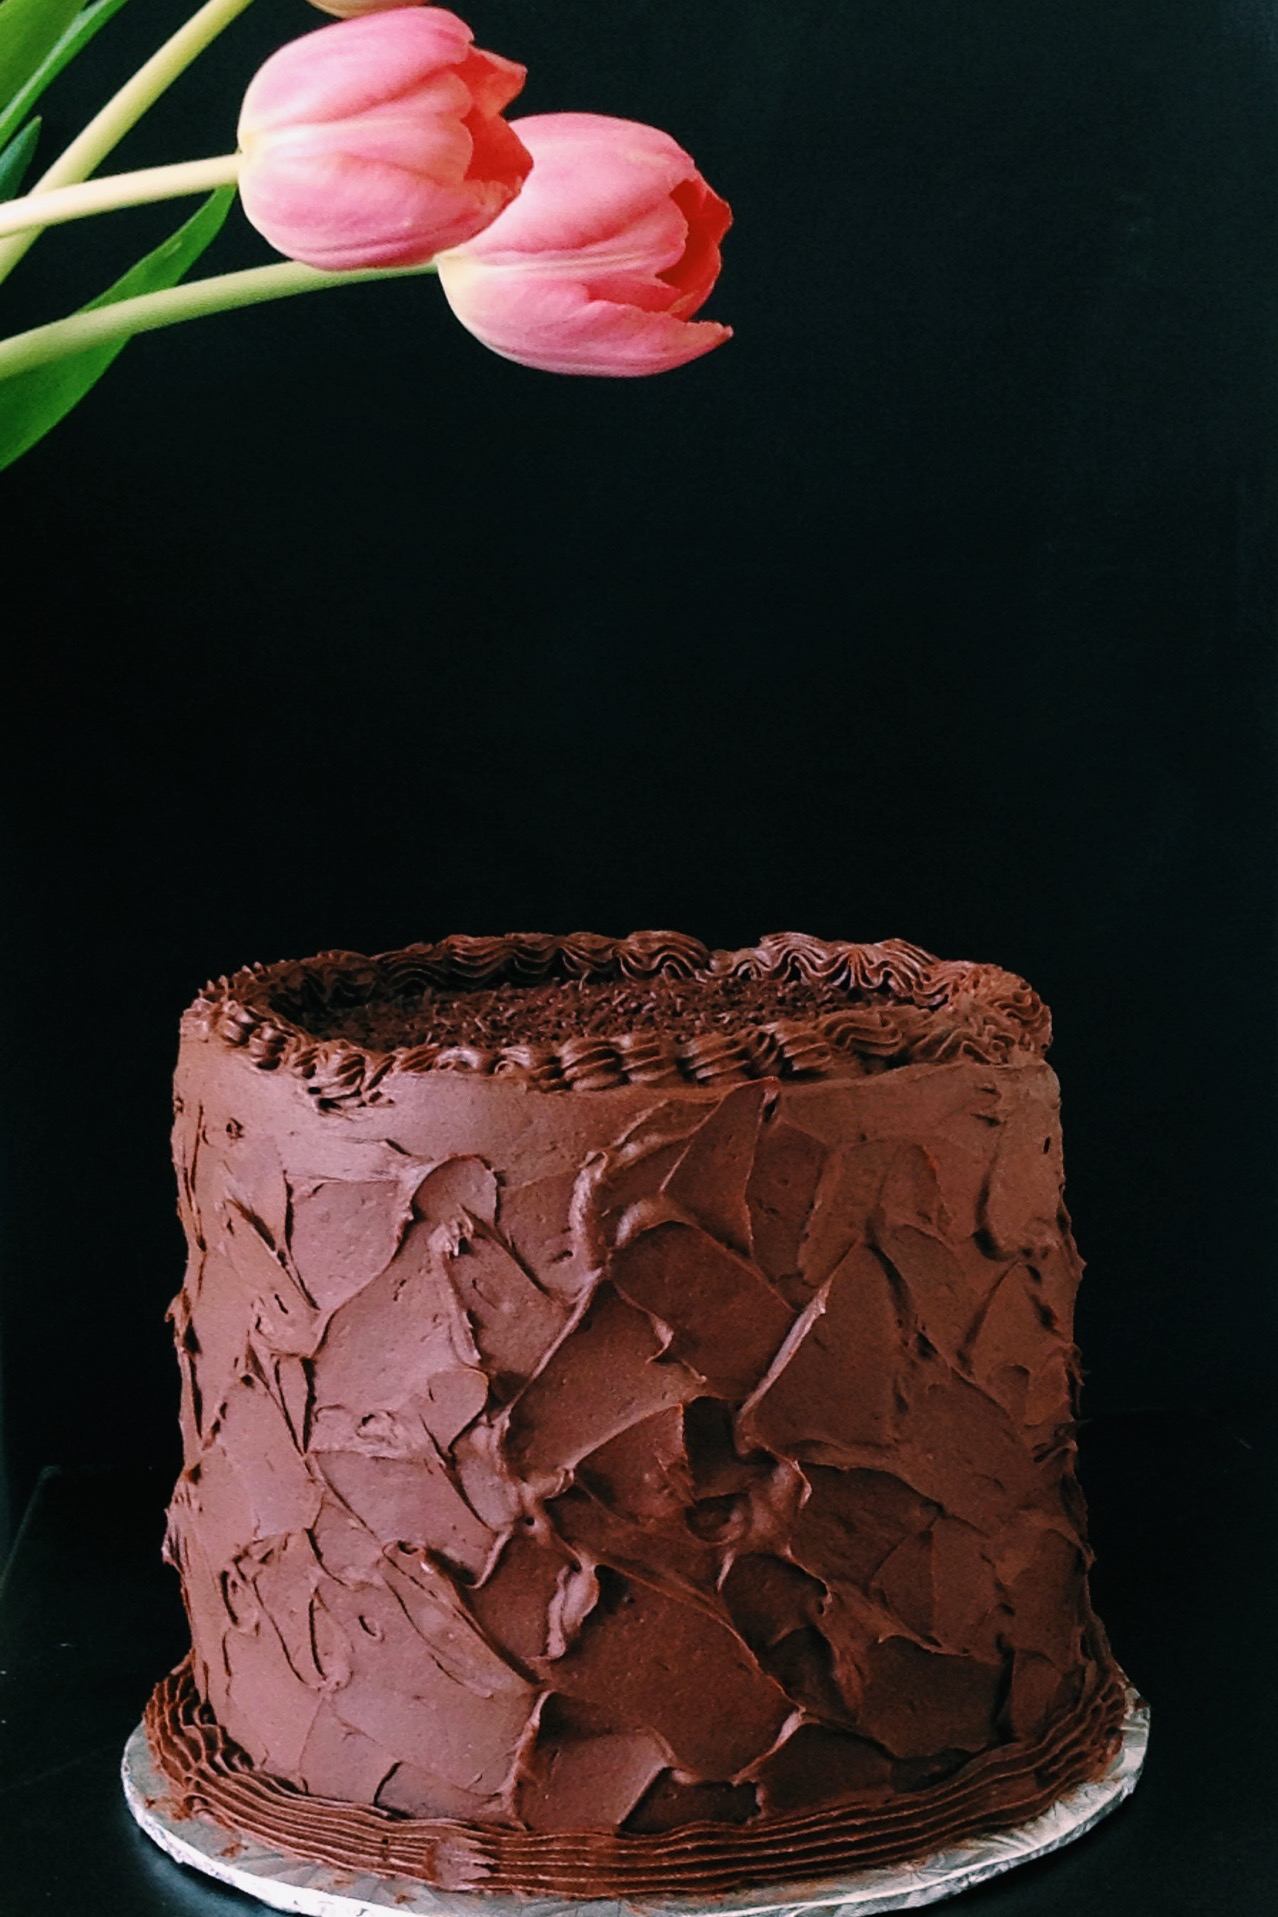 Chocolate lovers sculpted cake